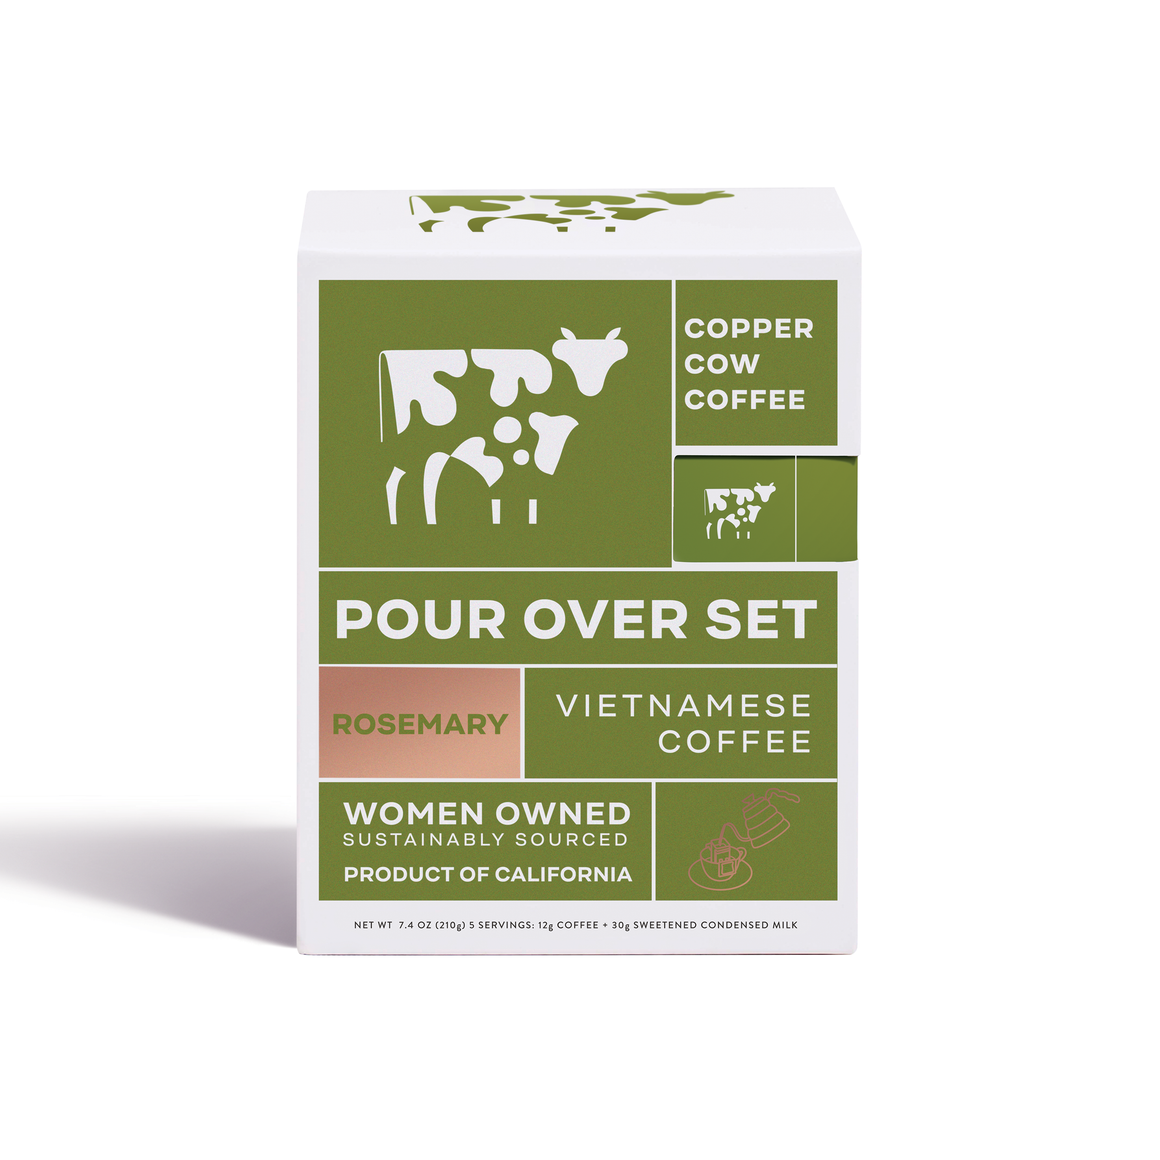 Copper Cow Coffee - Rosemary Latte | 5-Pack